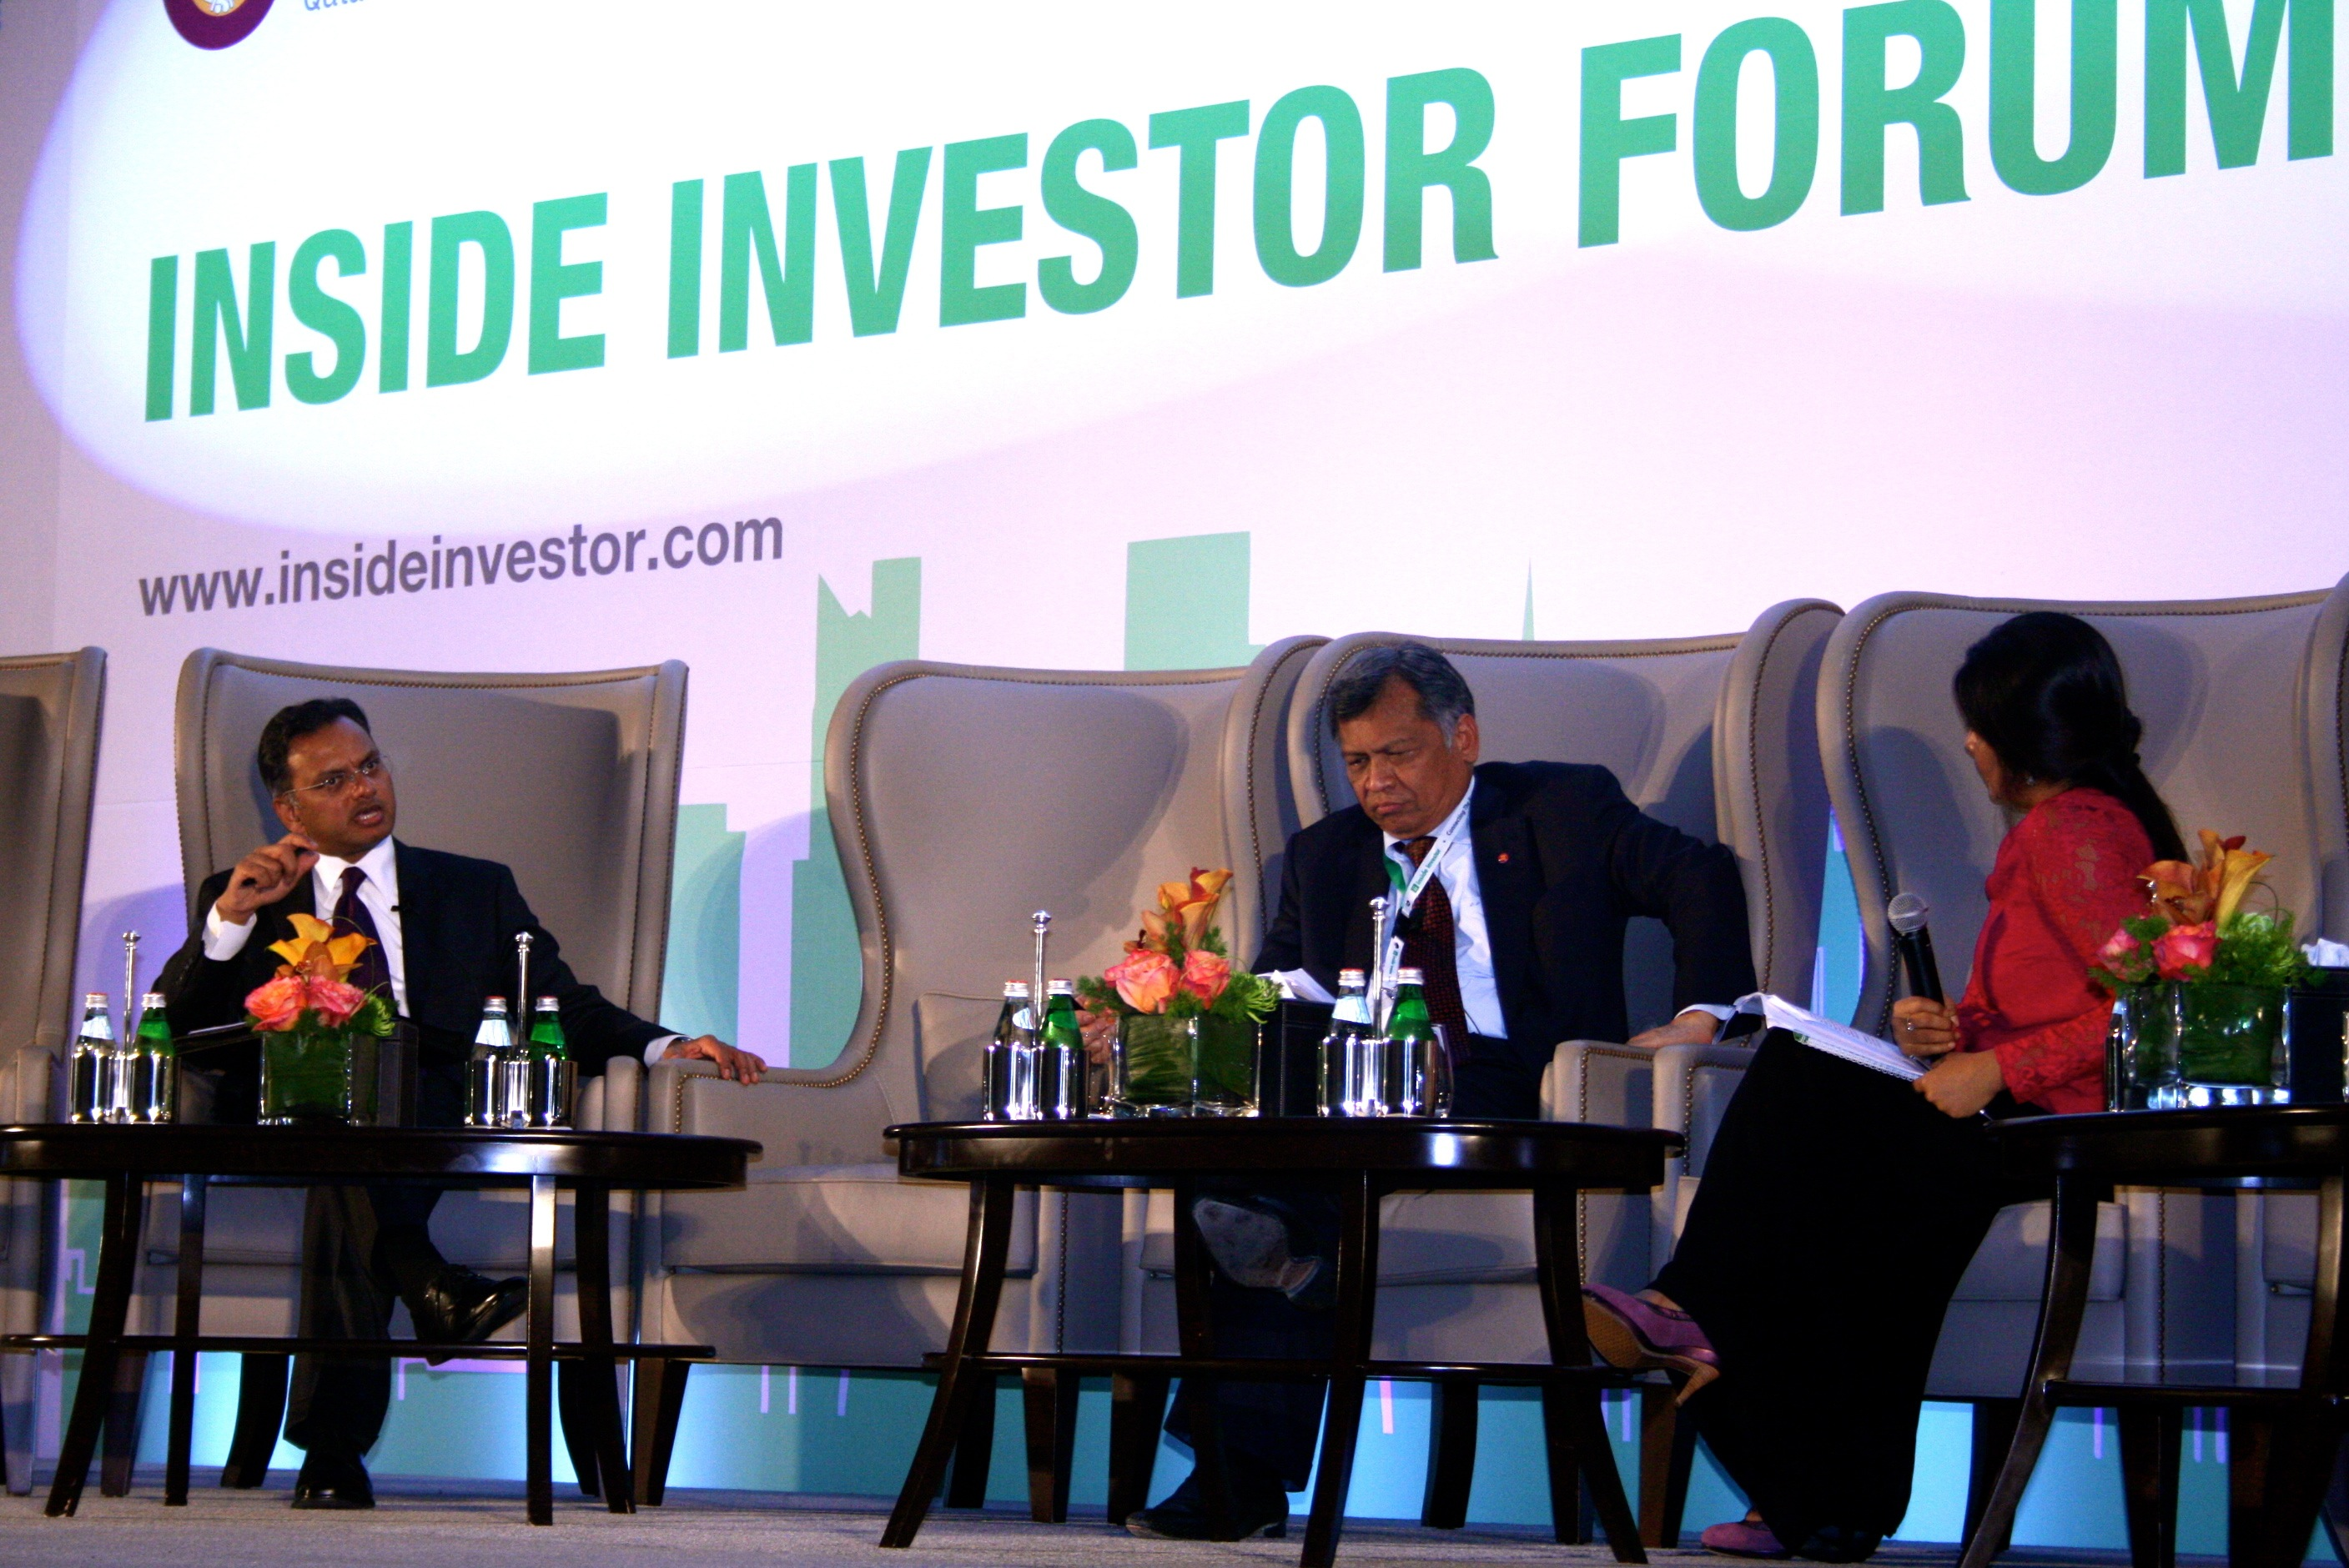 Inside Investor Forum Asia 2012 Press Release Oct 9 3